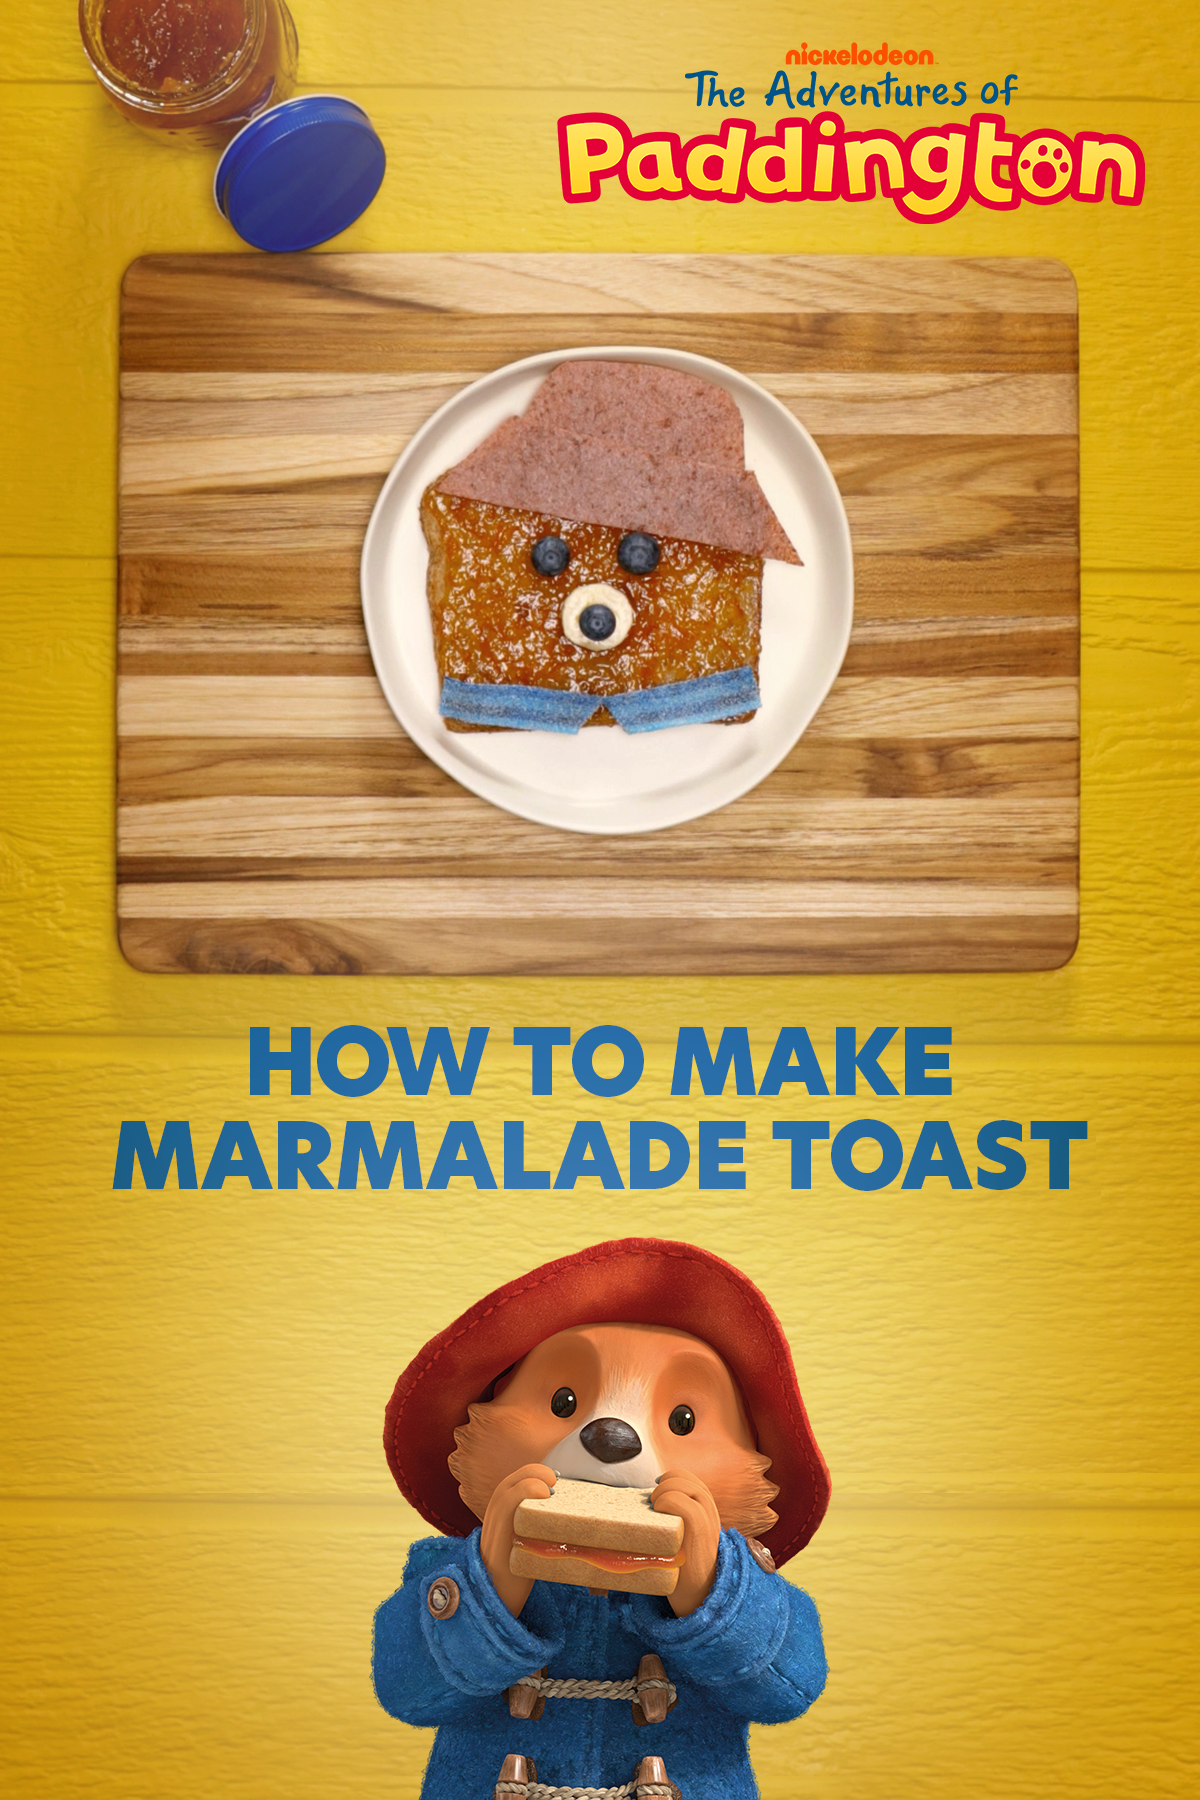 The Adventures of Paddington Marmalade Toast Recipe